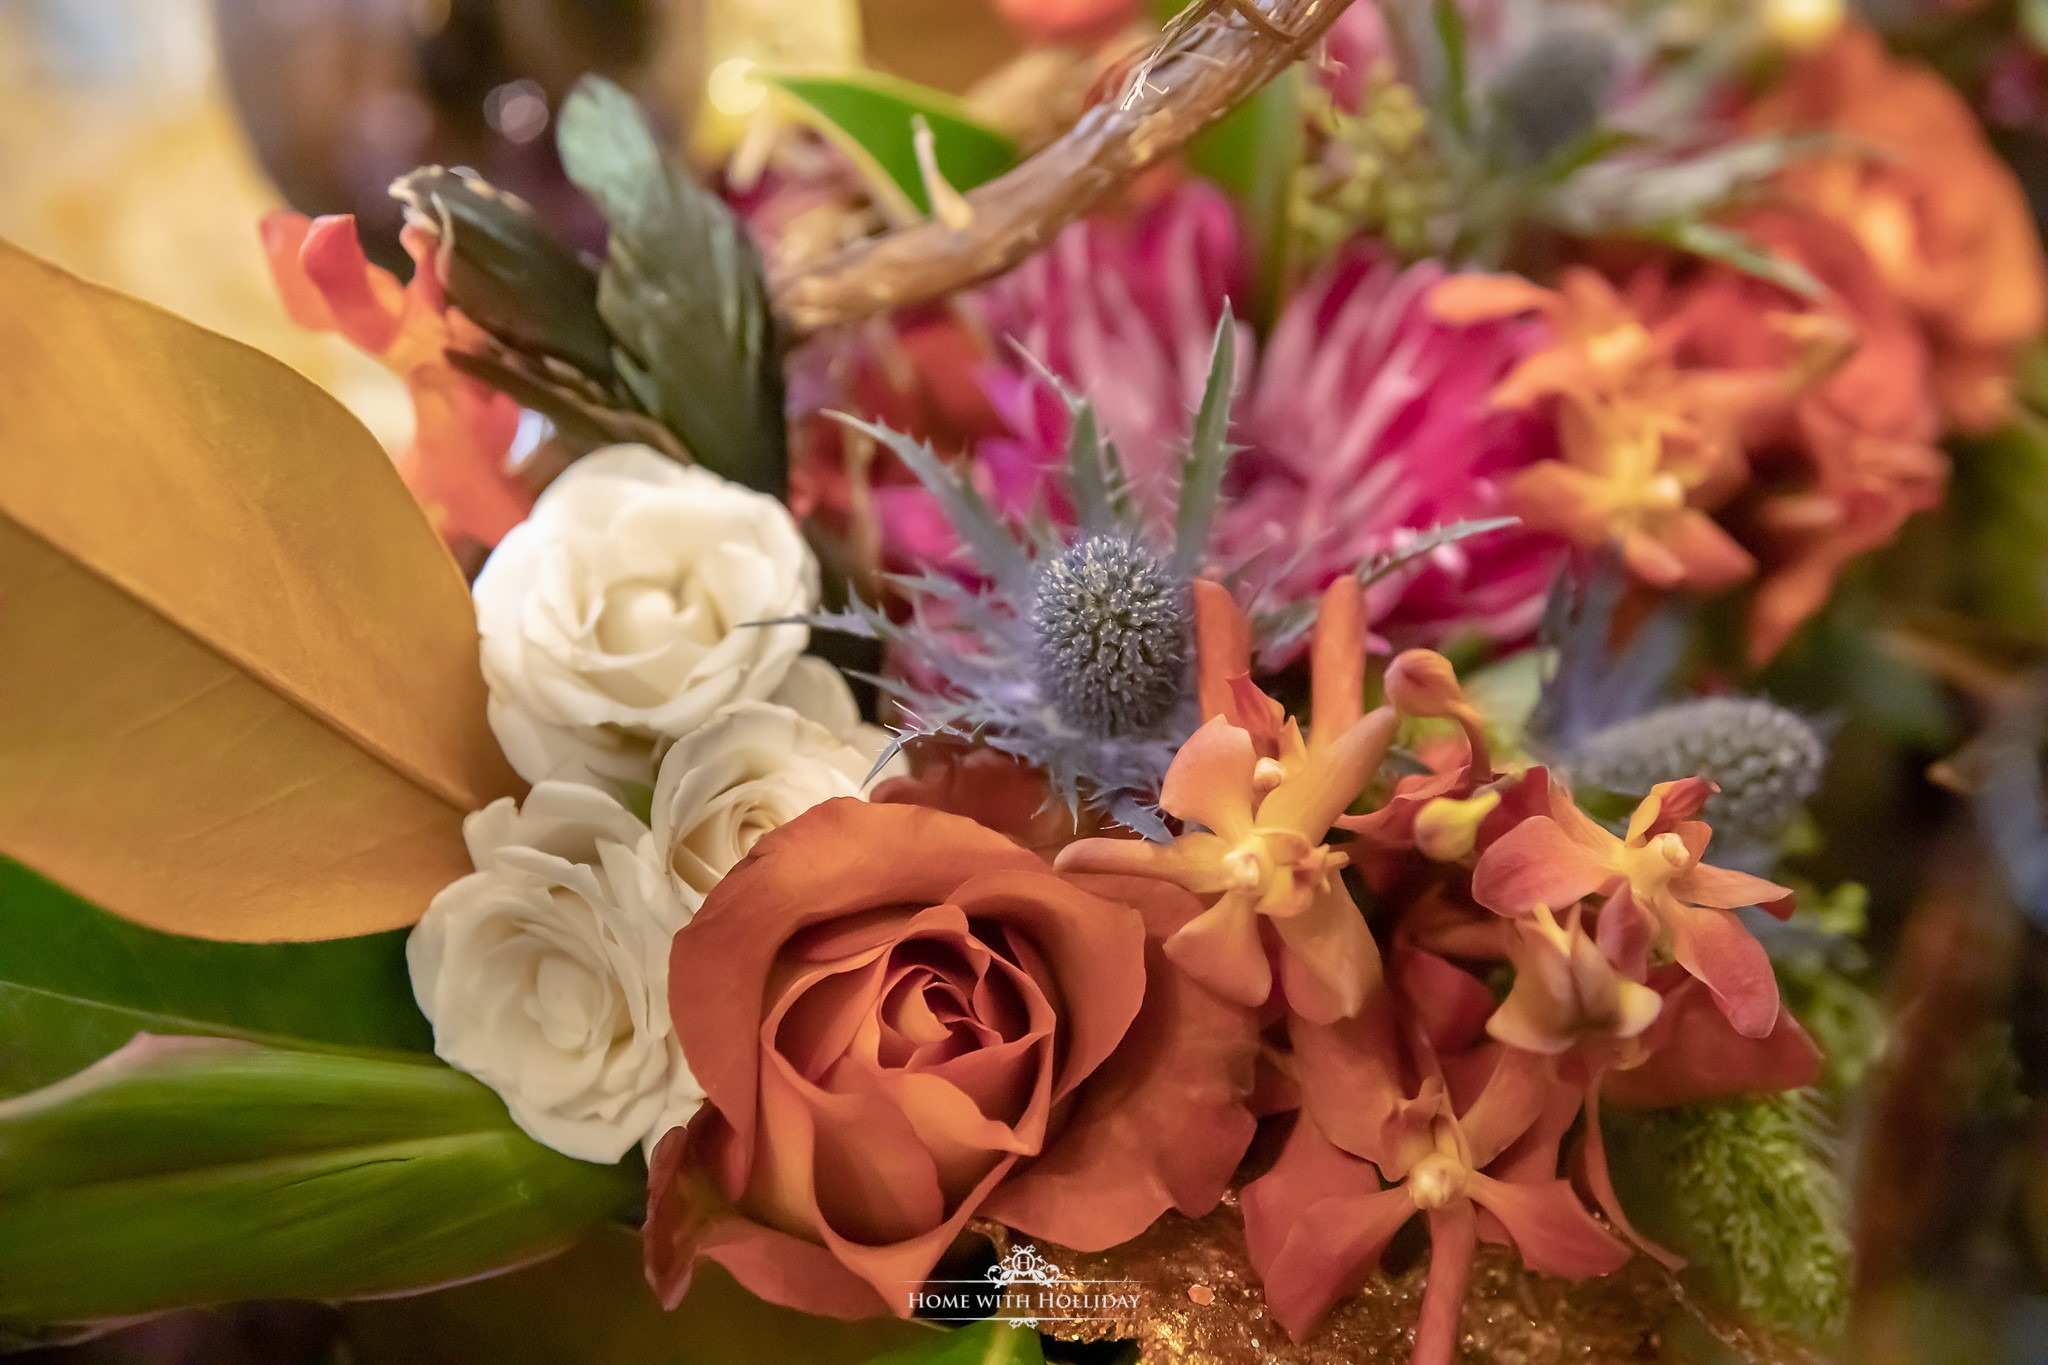 Florals for a Jewel-toned Thanksgiving Table Setting - Home with Holliday